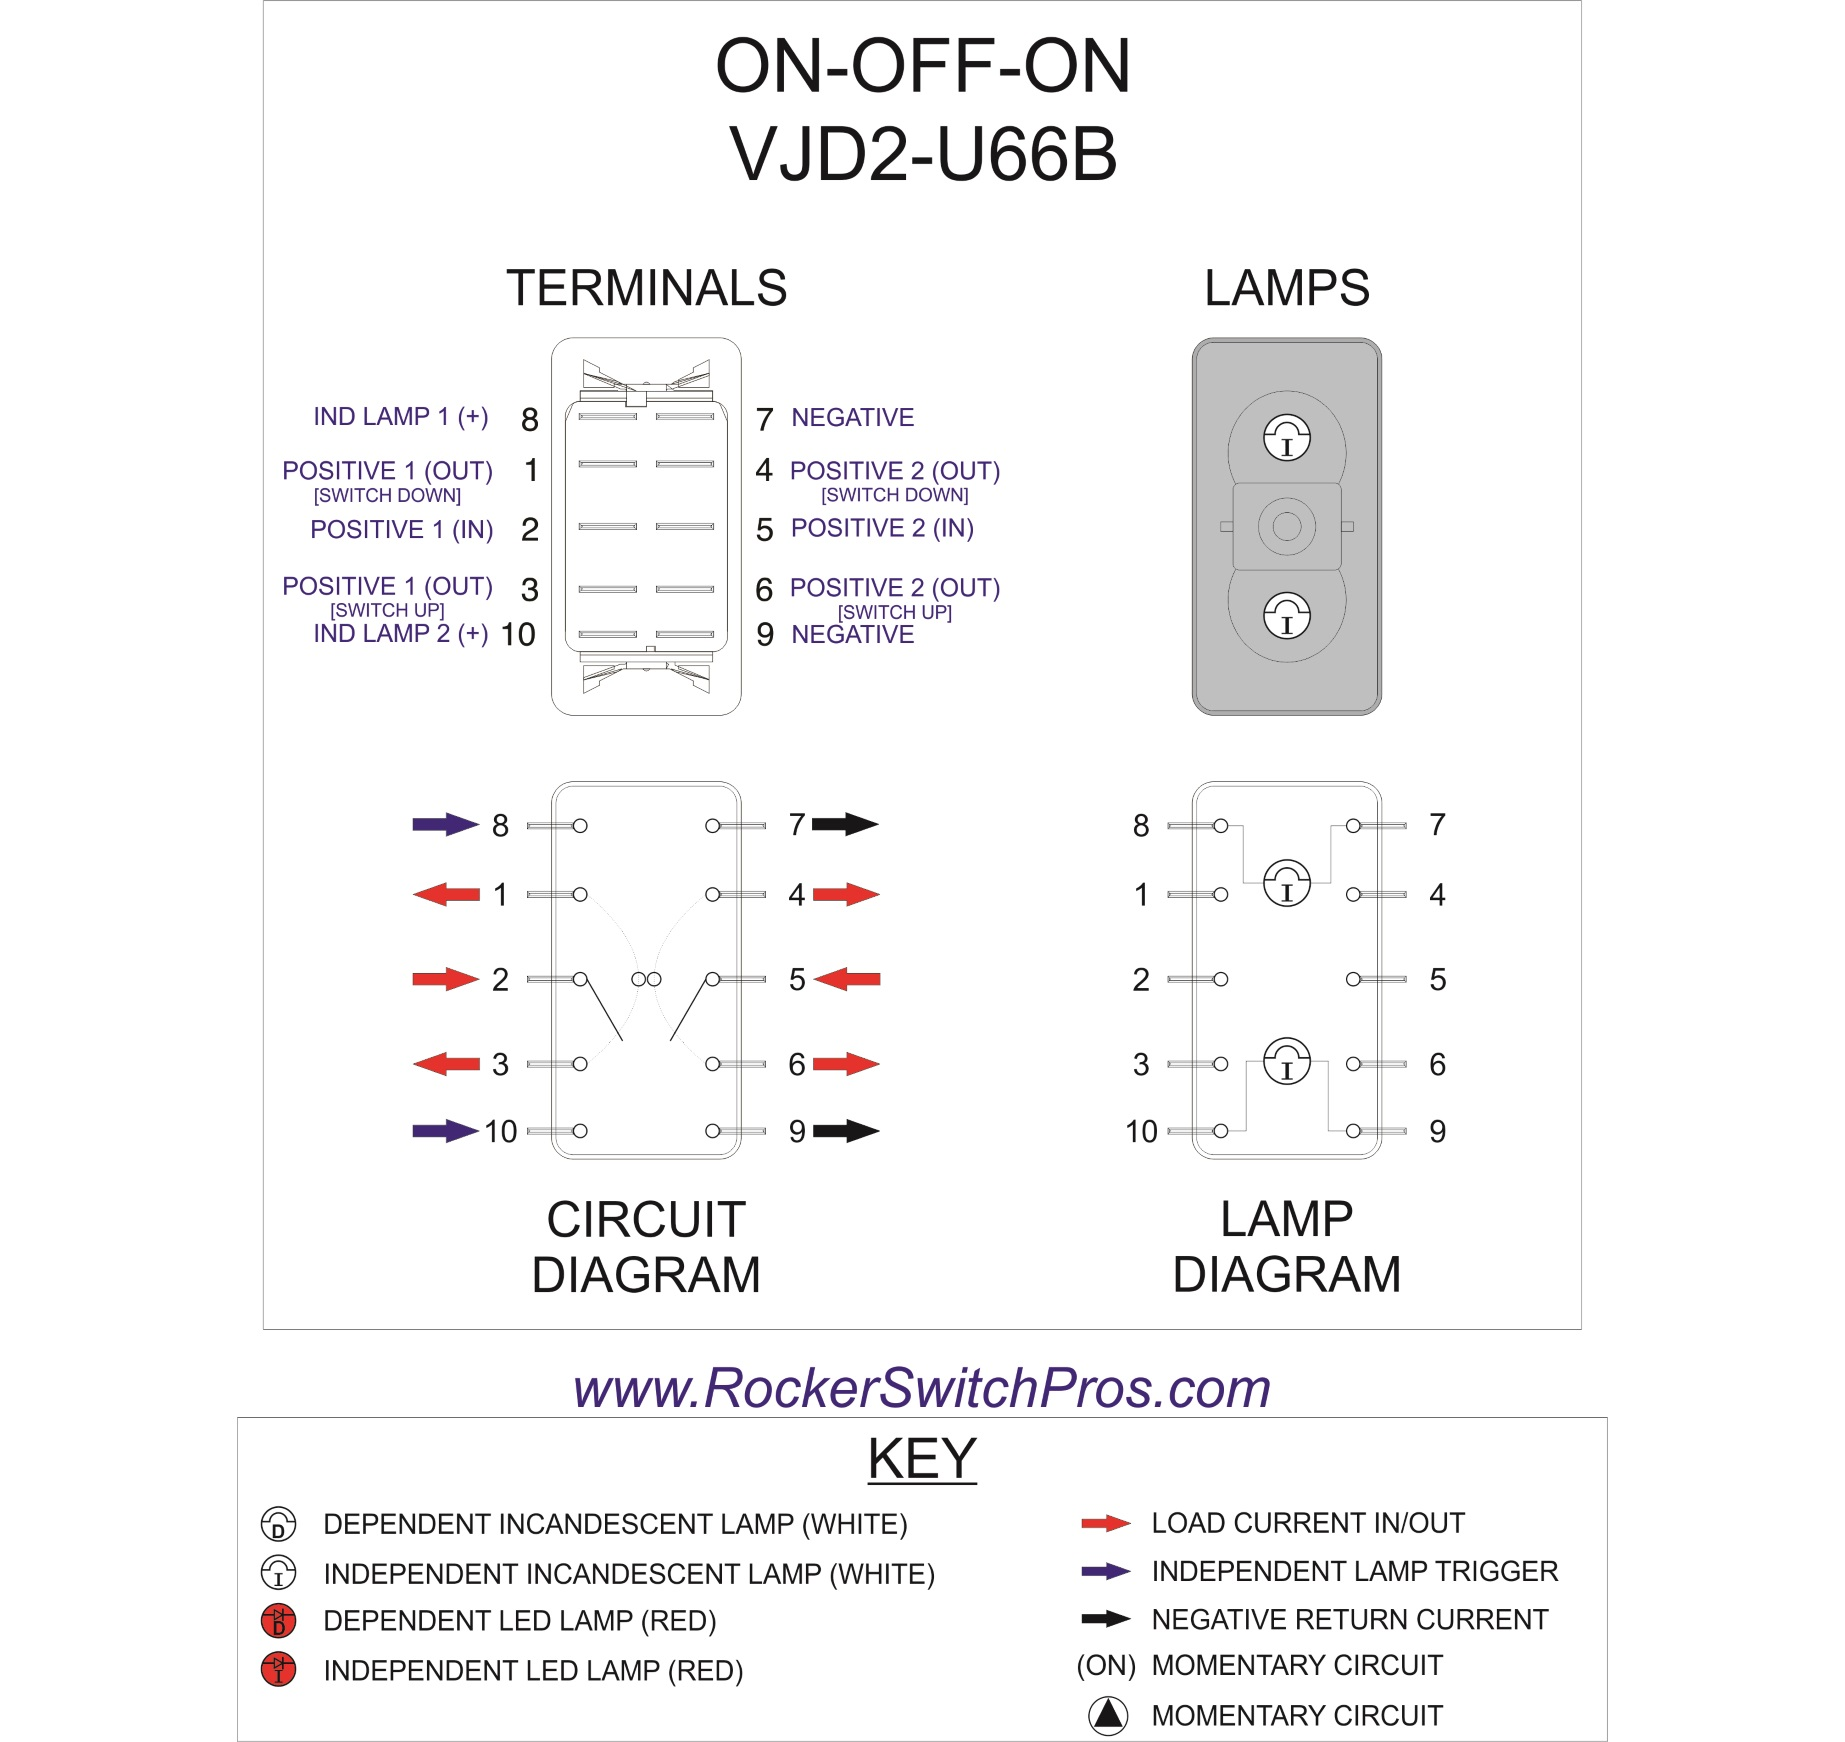 dpdt switch wiring diagram guitar free download wiring diagram rh xwiaw us Dpdt Momentary Switch Diagram Dpdt Toggle Switch